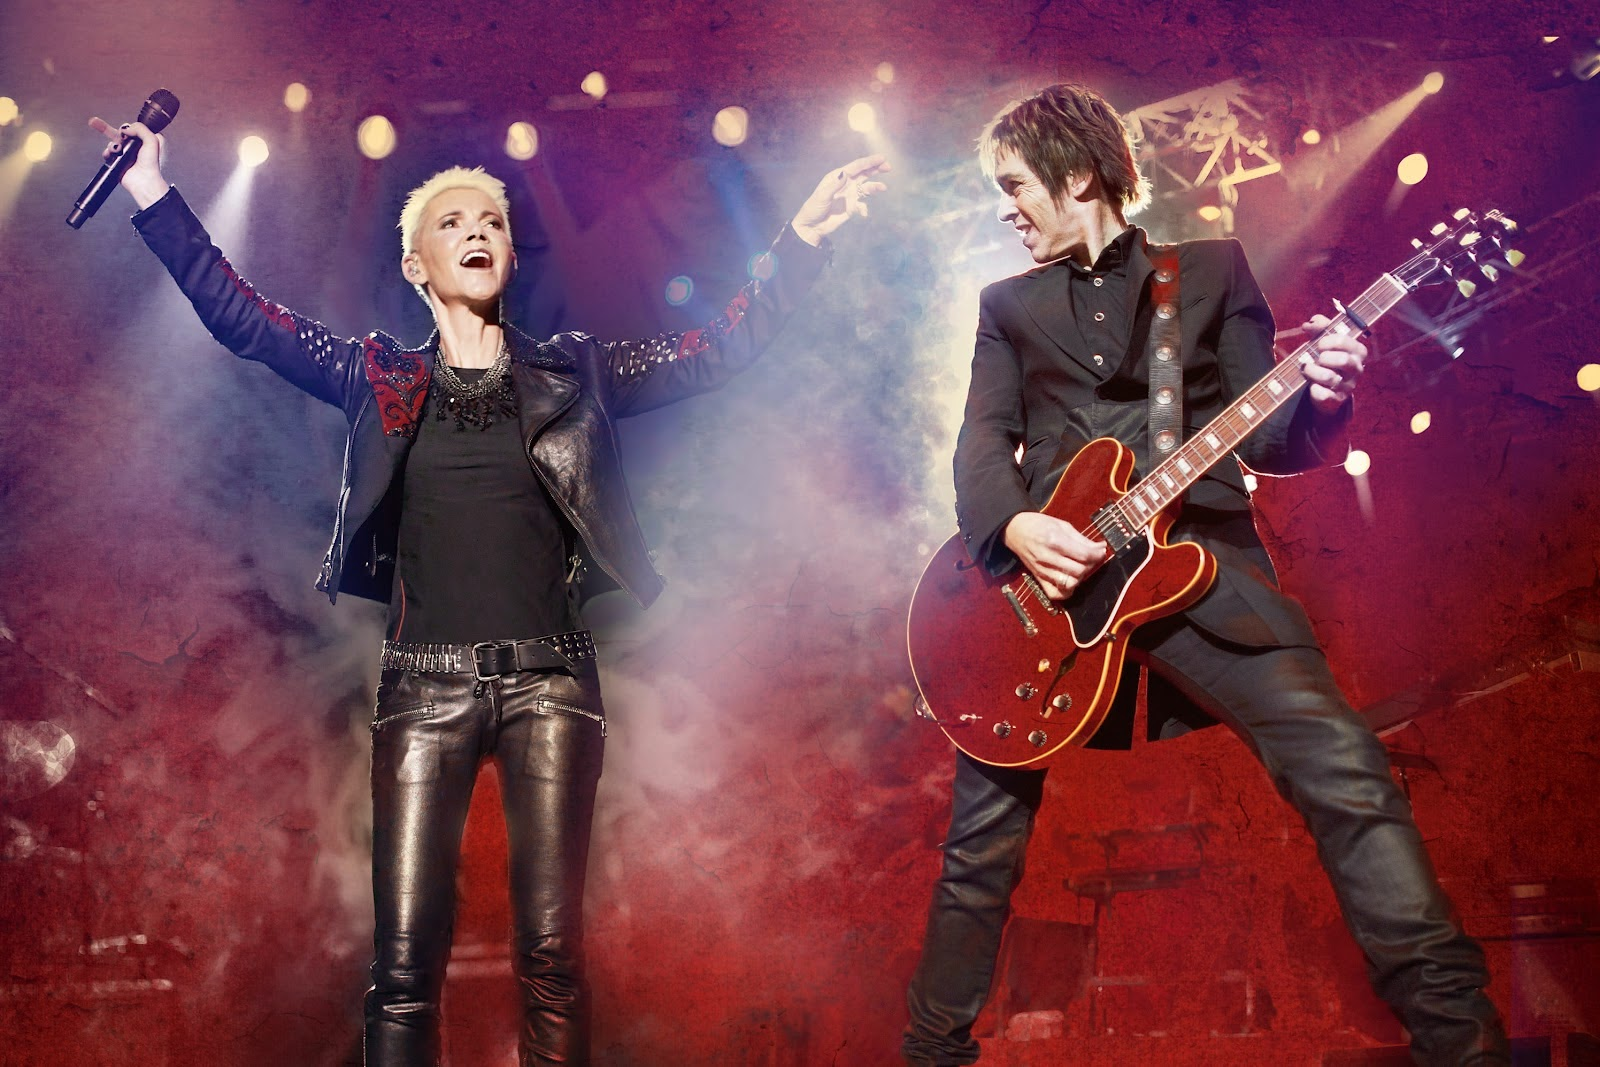 Roxette is a Swedish pop rock duo, consisting of Marie Fredriksson (vocals) and Per Gessle (vocals and guitar).http://www.jinglejanglejungle.net/2015/02/eu3.html #Roxette